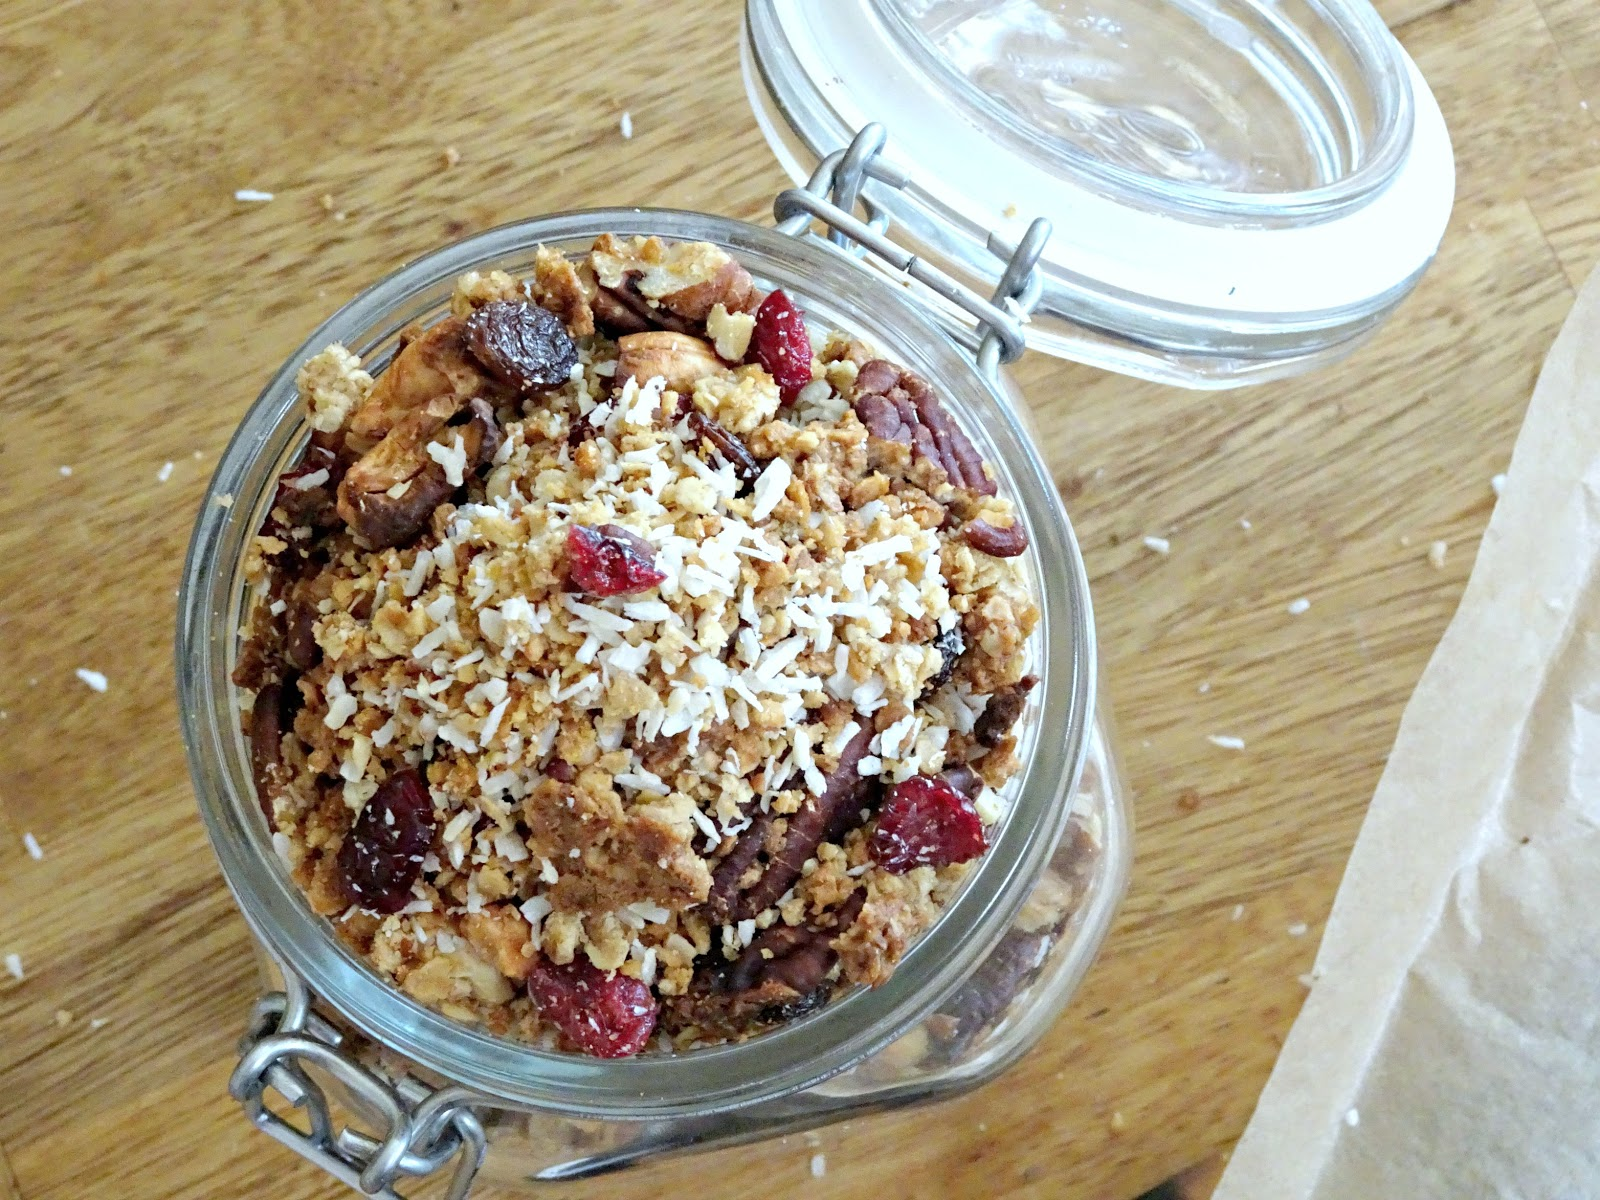 Shannon michelle my go to homemade vegan granola ive been meaning to introduce some vegan recipes onto my blog for a while now and thought what better way to kick it off than to share my favourite go to ccuart Image collections